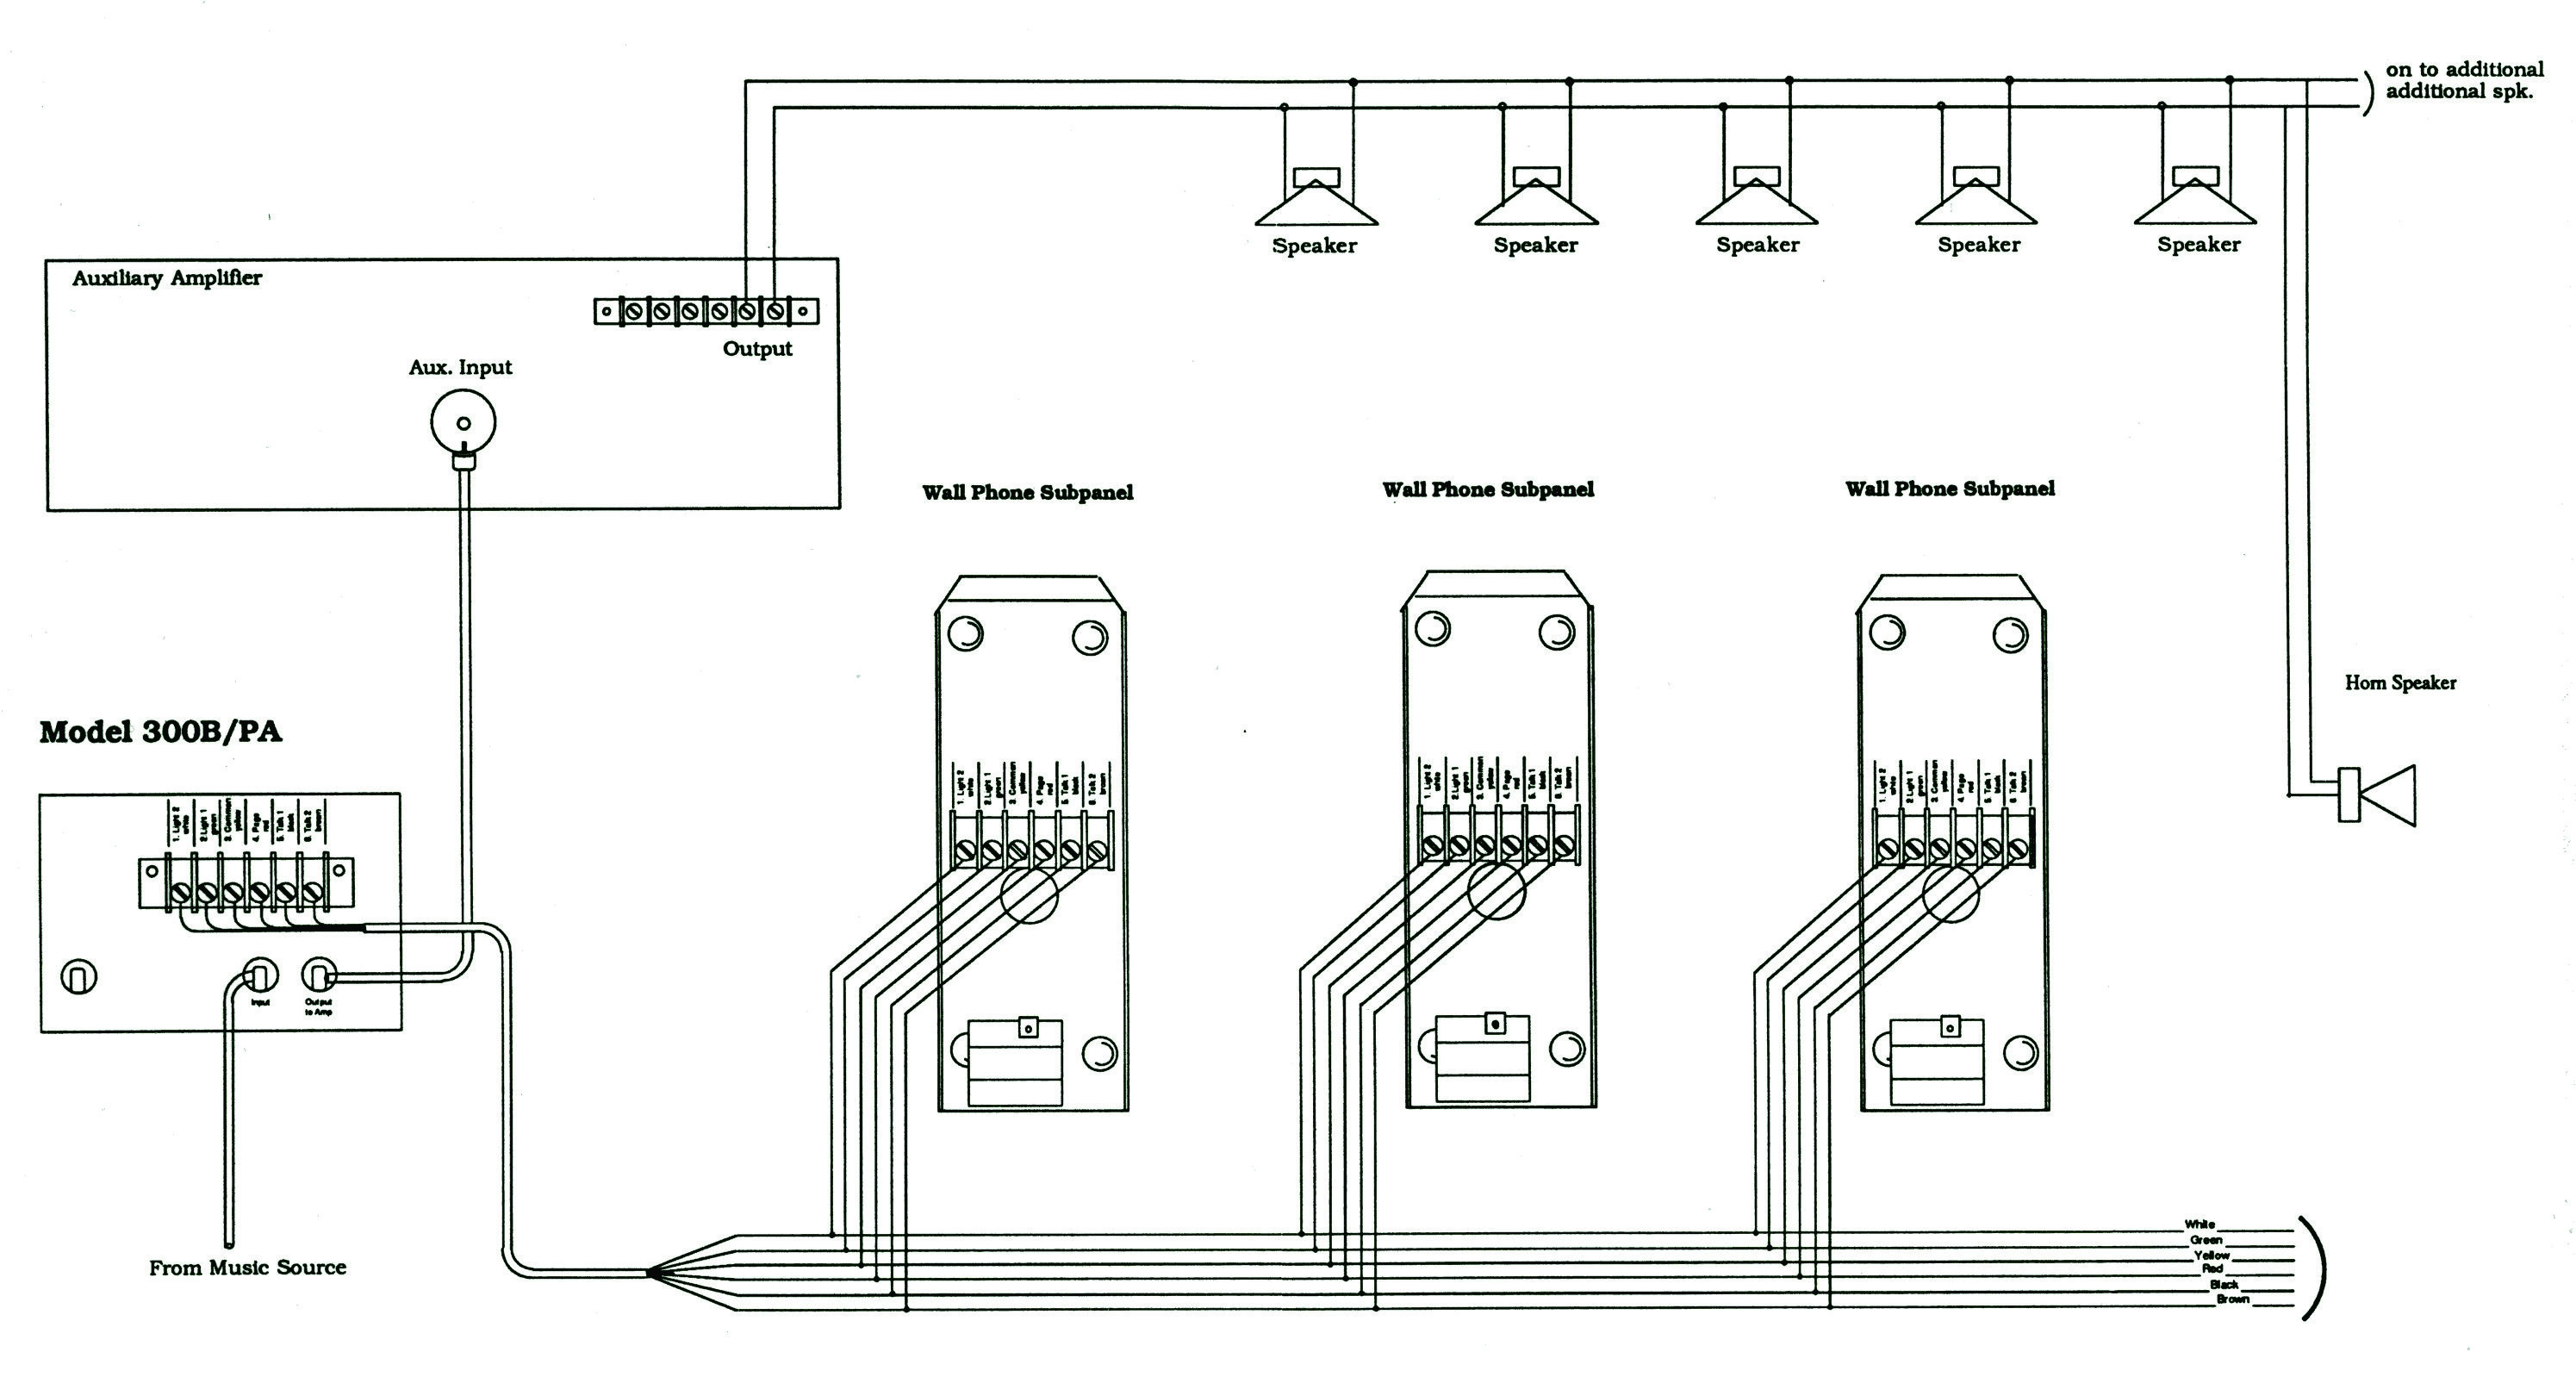 pa system wiring diagram Download-pa system wiring diagram Collection pa system wiring diagram free image about wiring diagram wire DOWNLOAD Wiring Diagram Pics Detail Name pa system 16-t